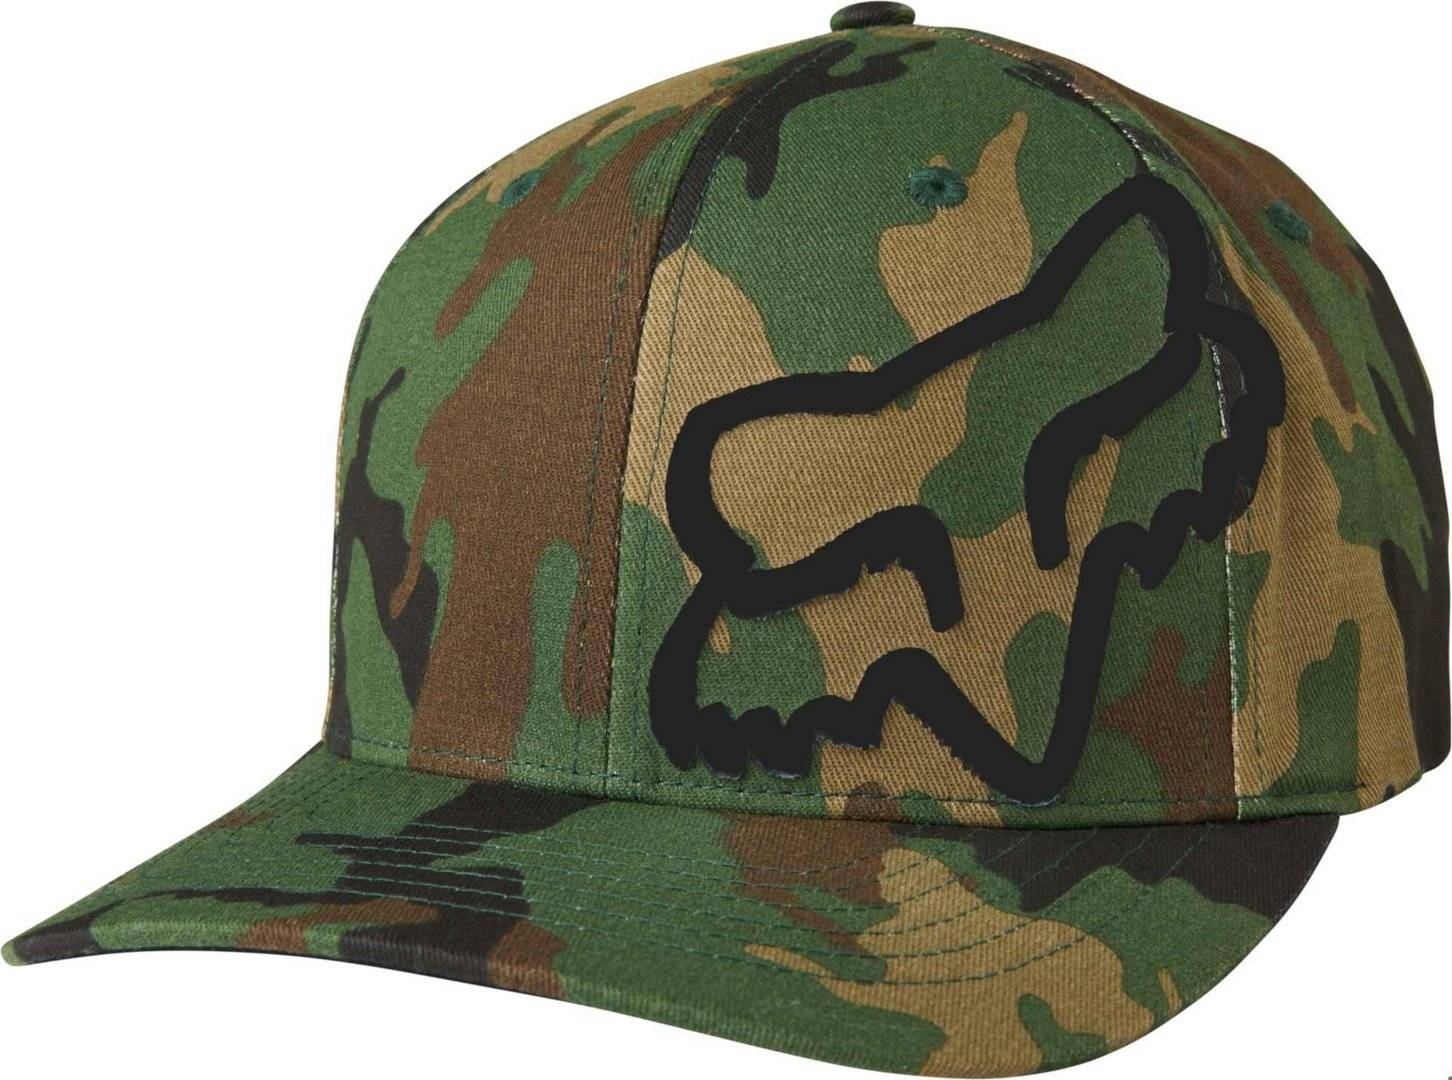 Fox Flex 45 FF Cappello Verde Marrone L XL